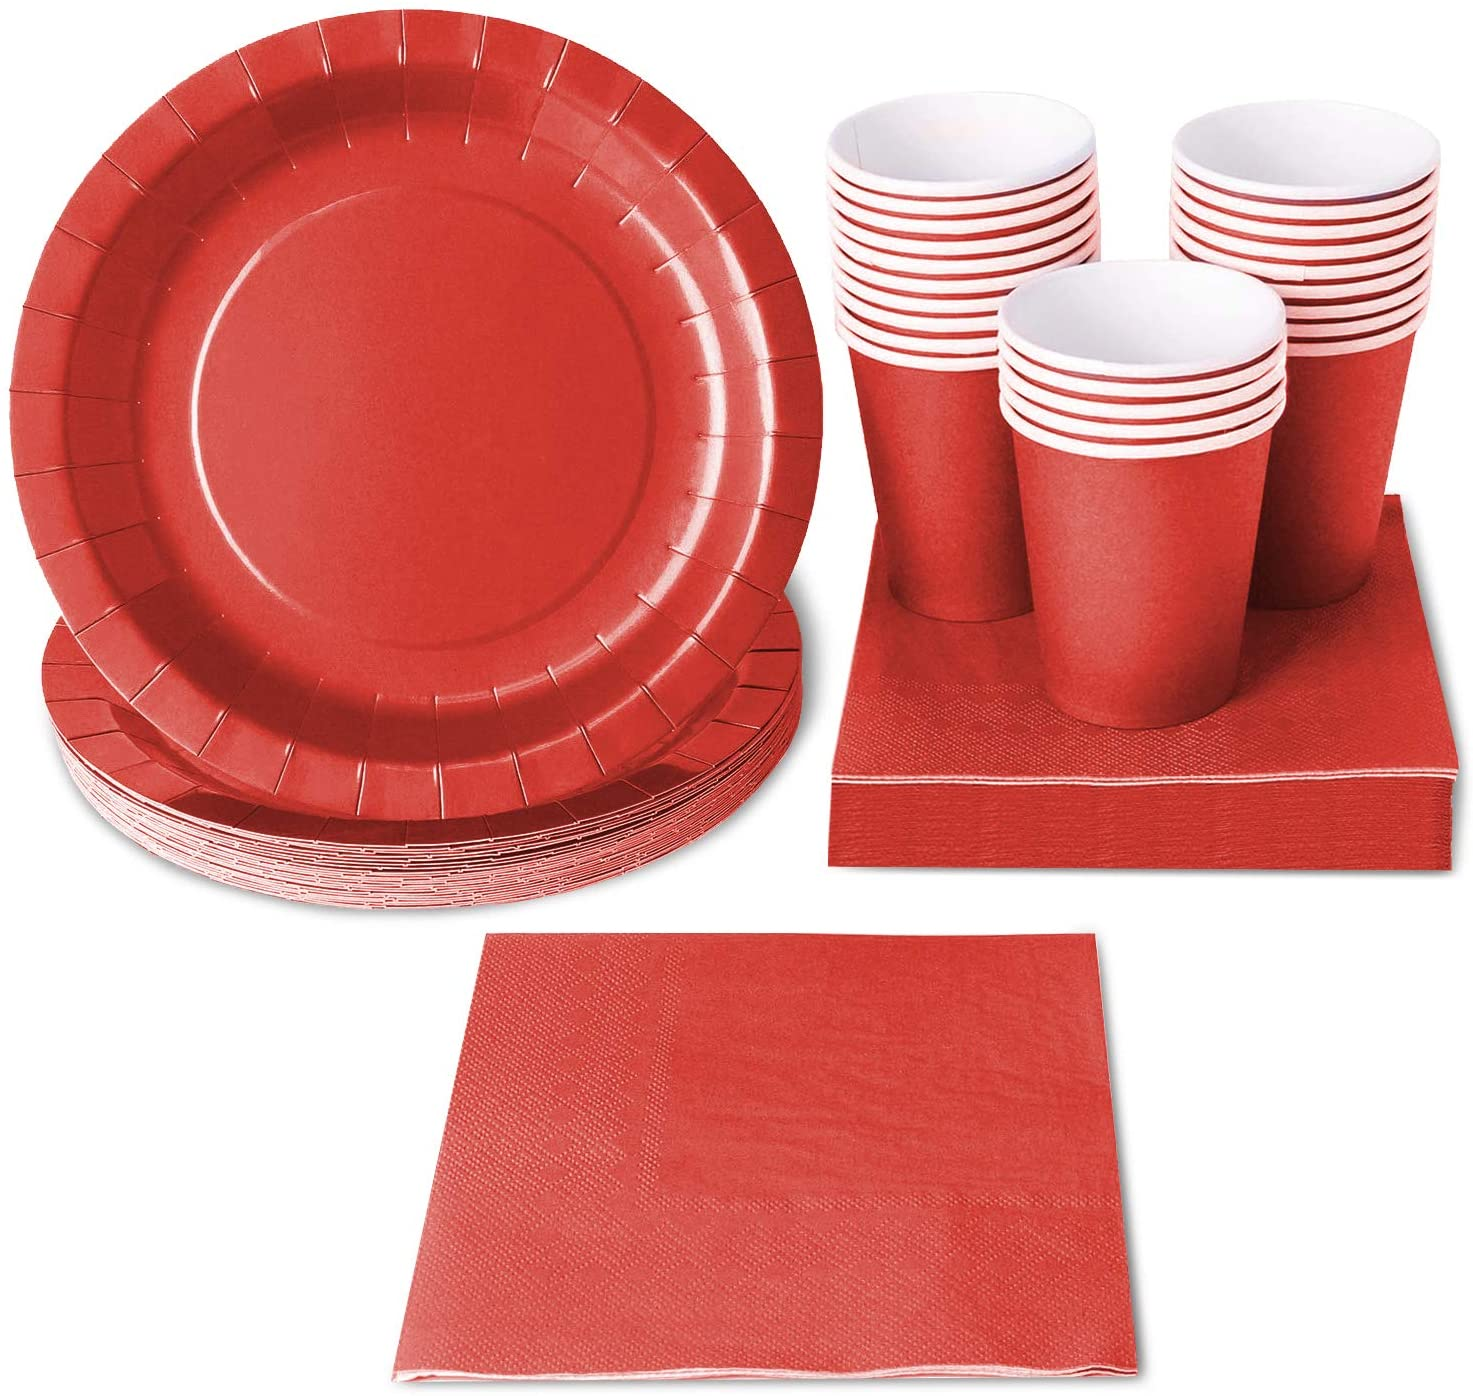 Red Party Supplies, Paper Plates, Cups, and Napkins (Serves 24, 72 Pieces)